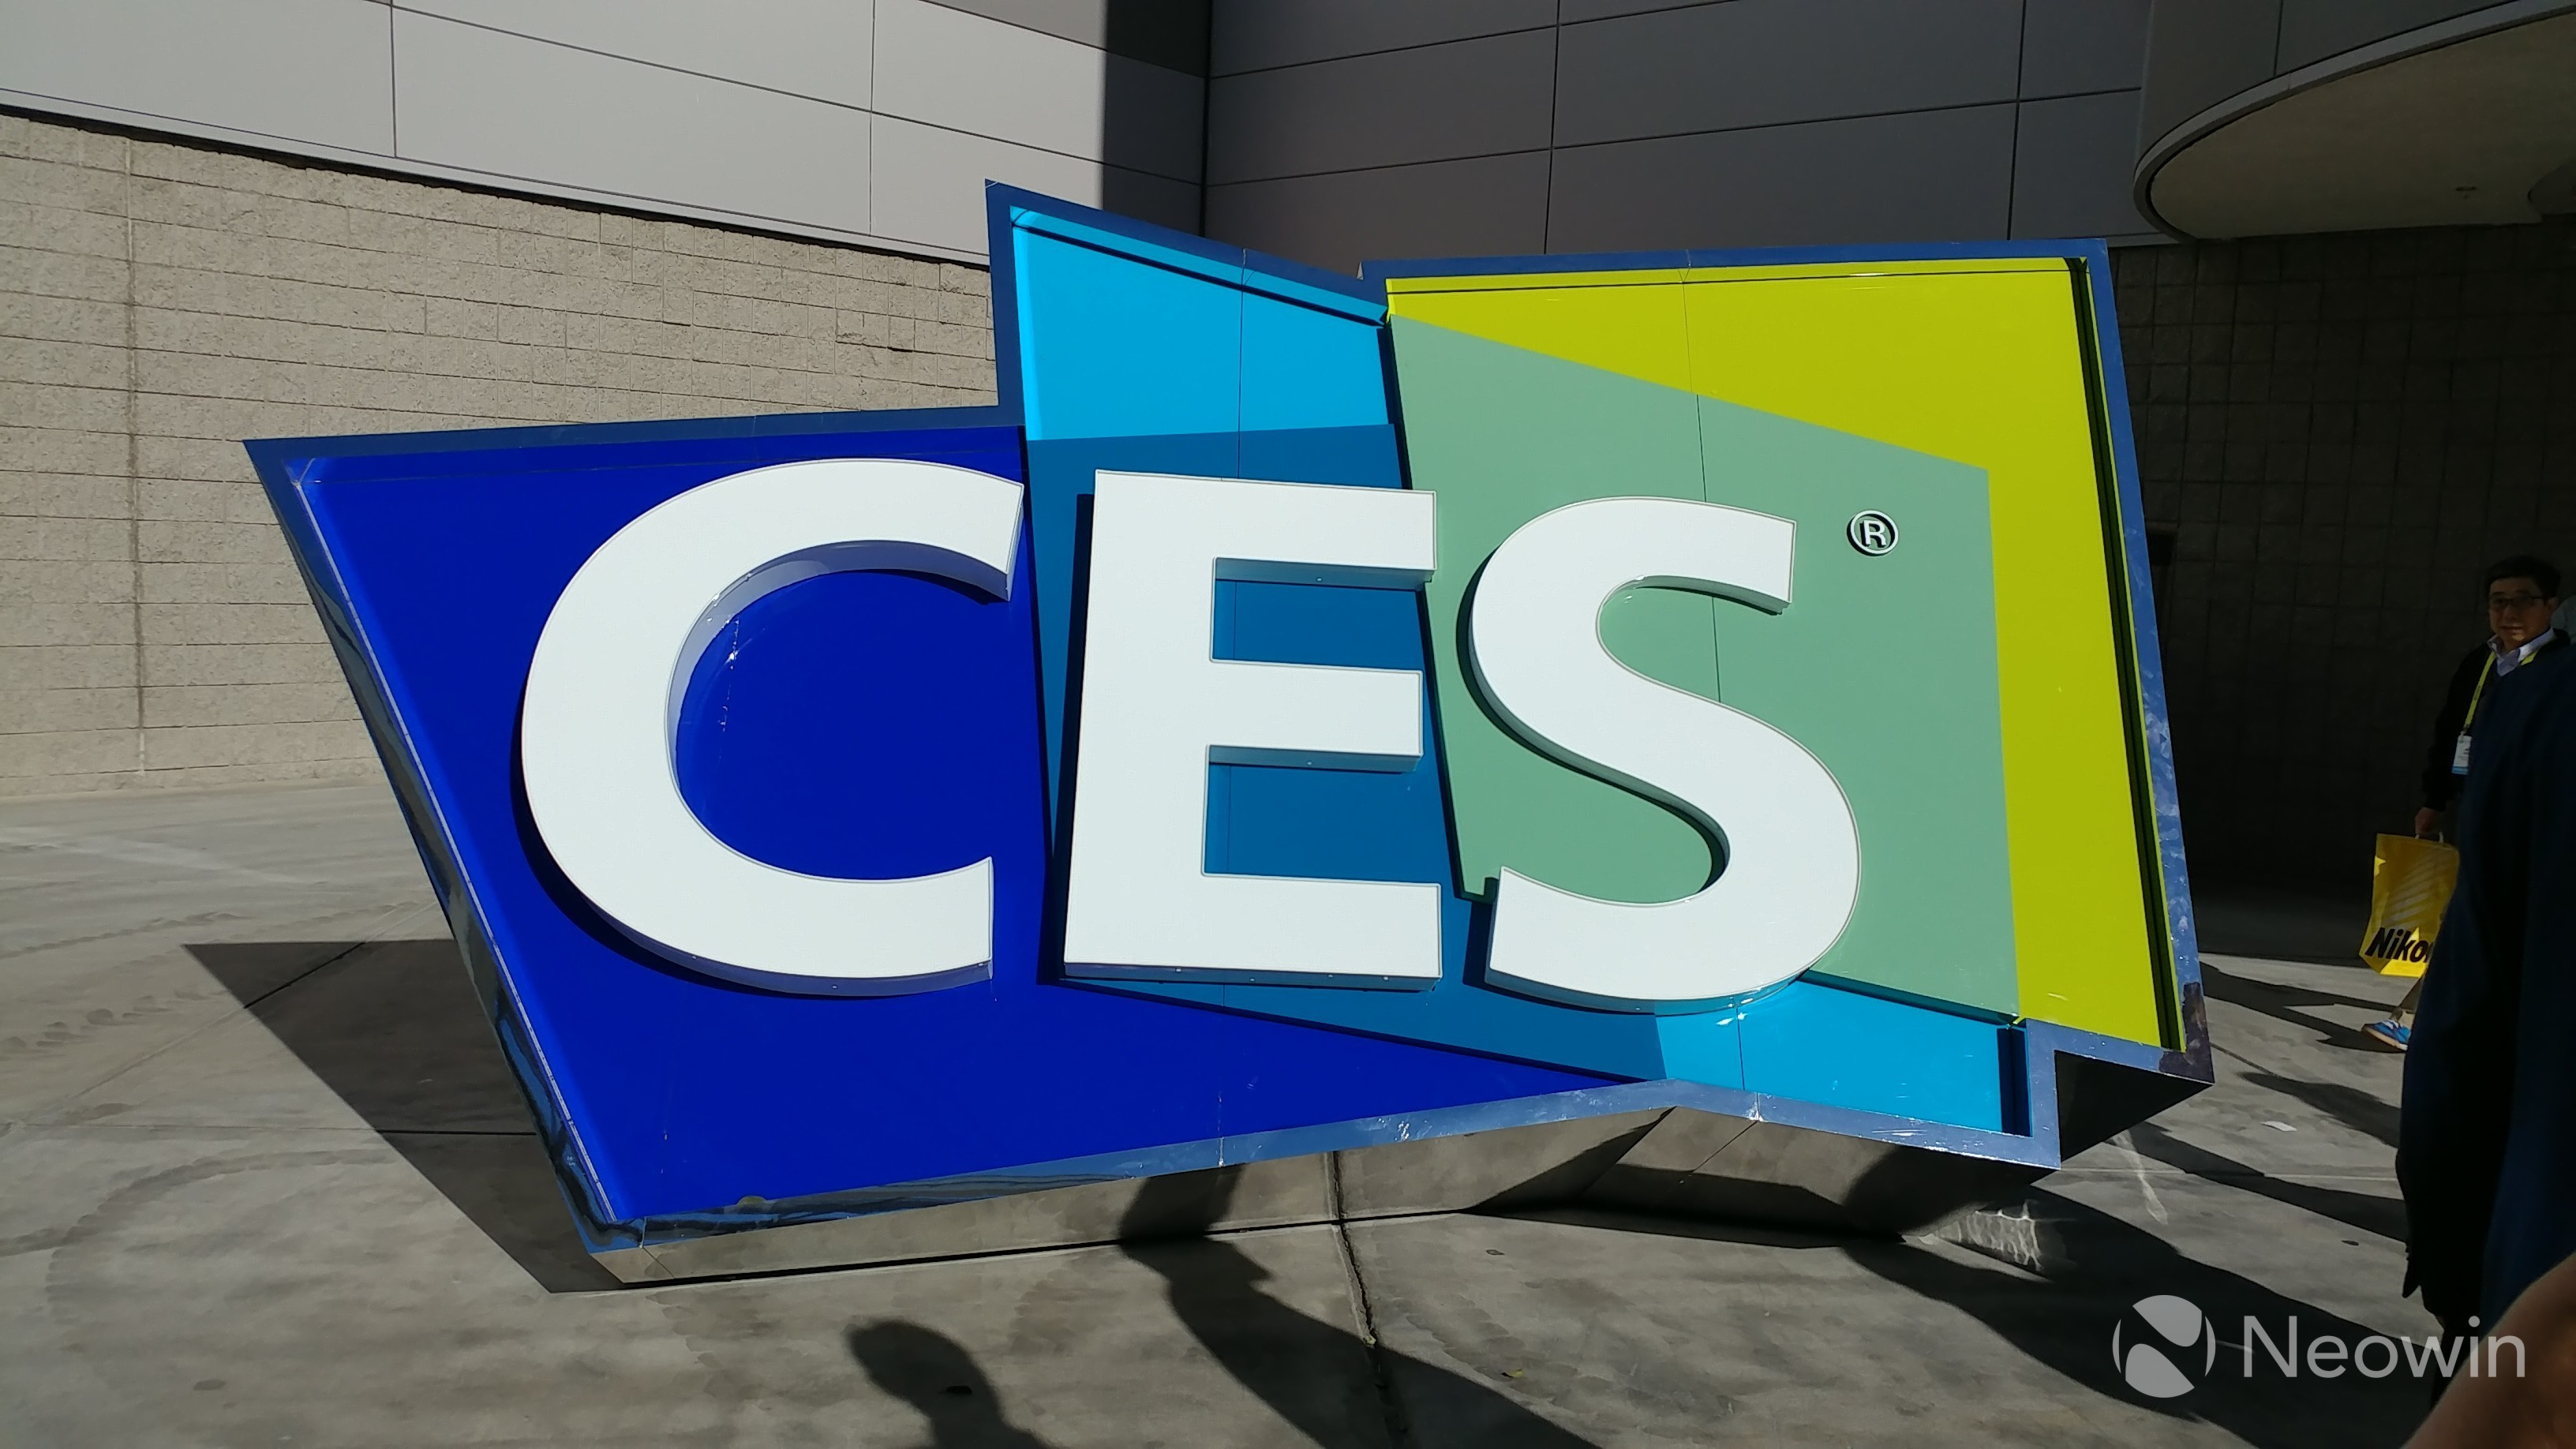 Samsung To Launch 3 Projects, 7 Startups At CES